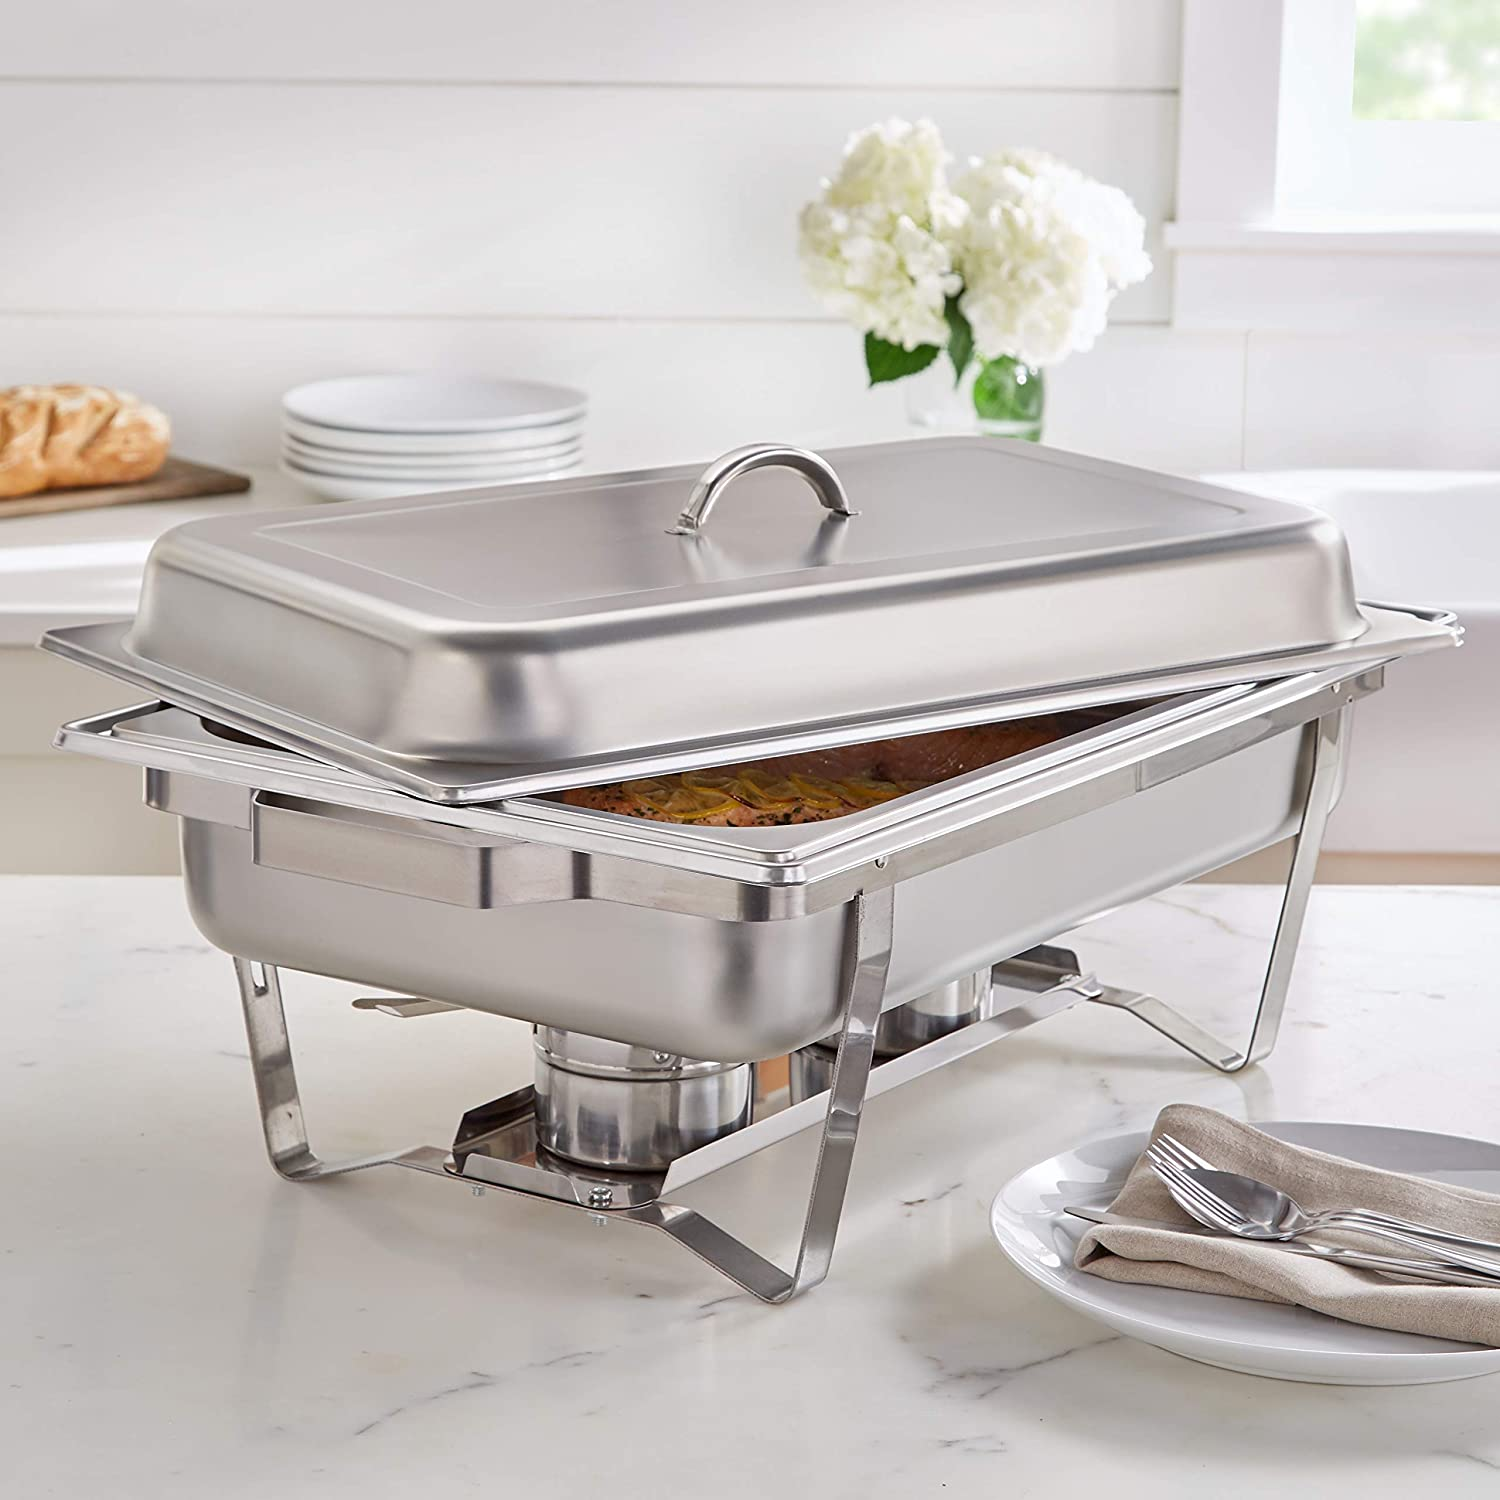 BrylaneHome 9 Quart Stainless Chafing Dish Rectangular Stainles Manufacturer Max 83% OFF OFFicial shop